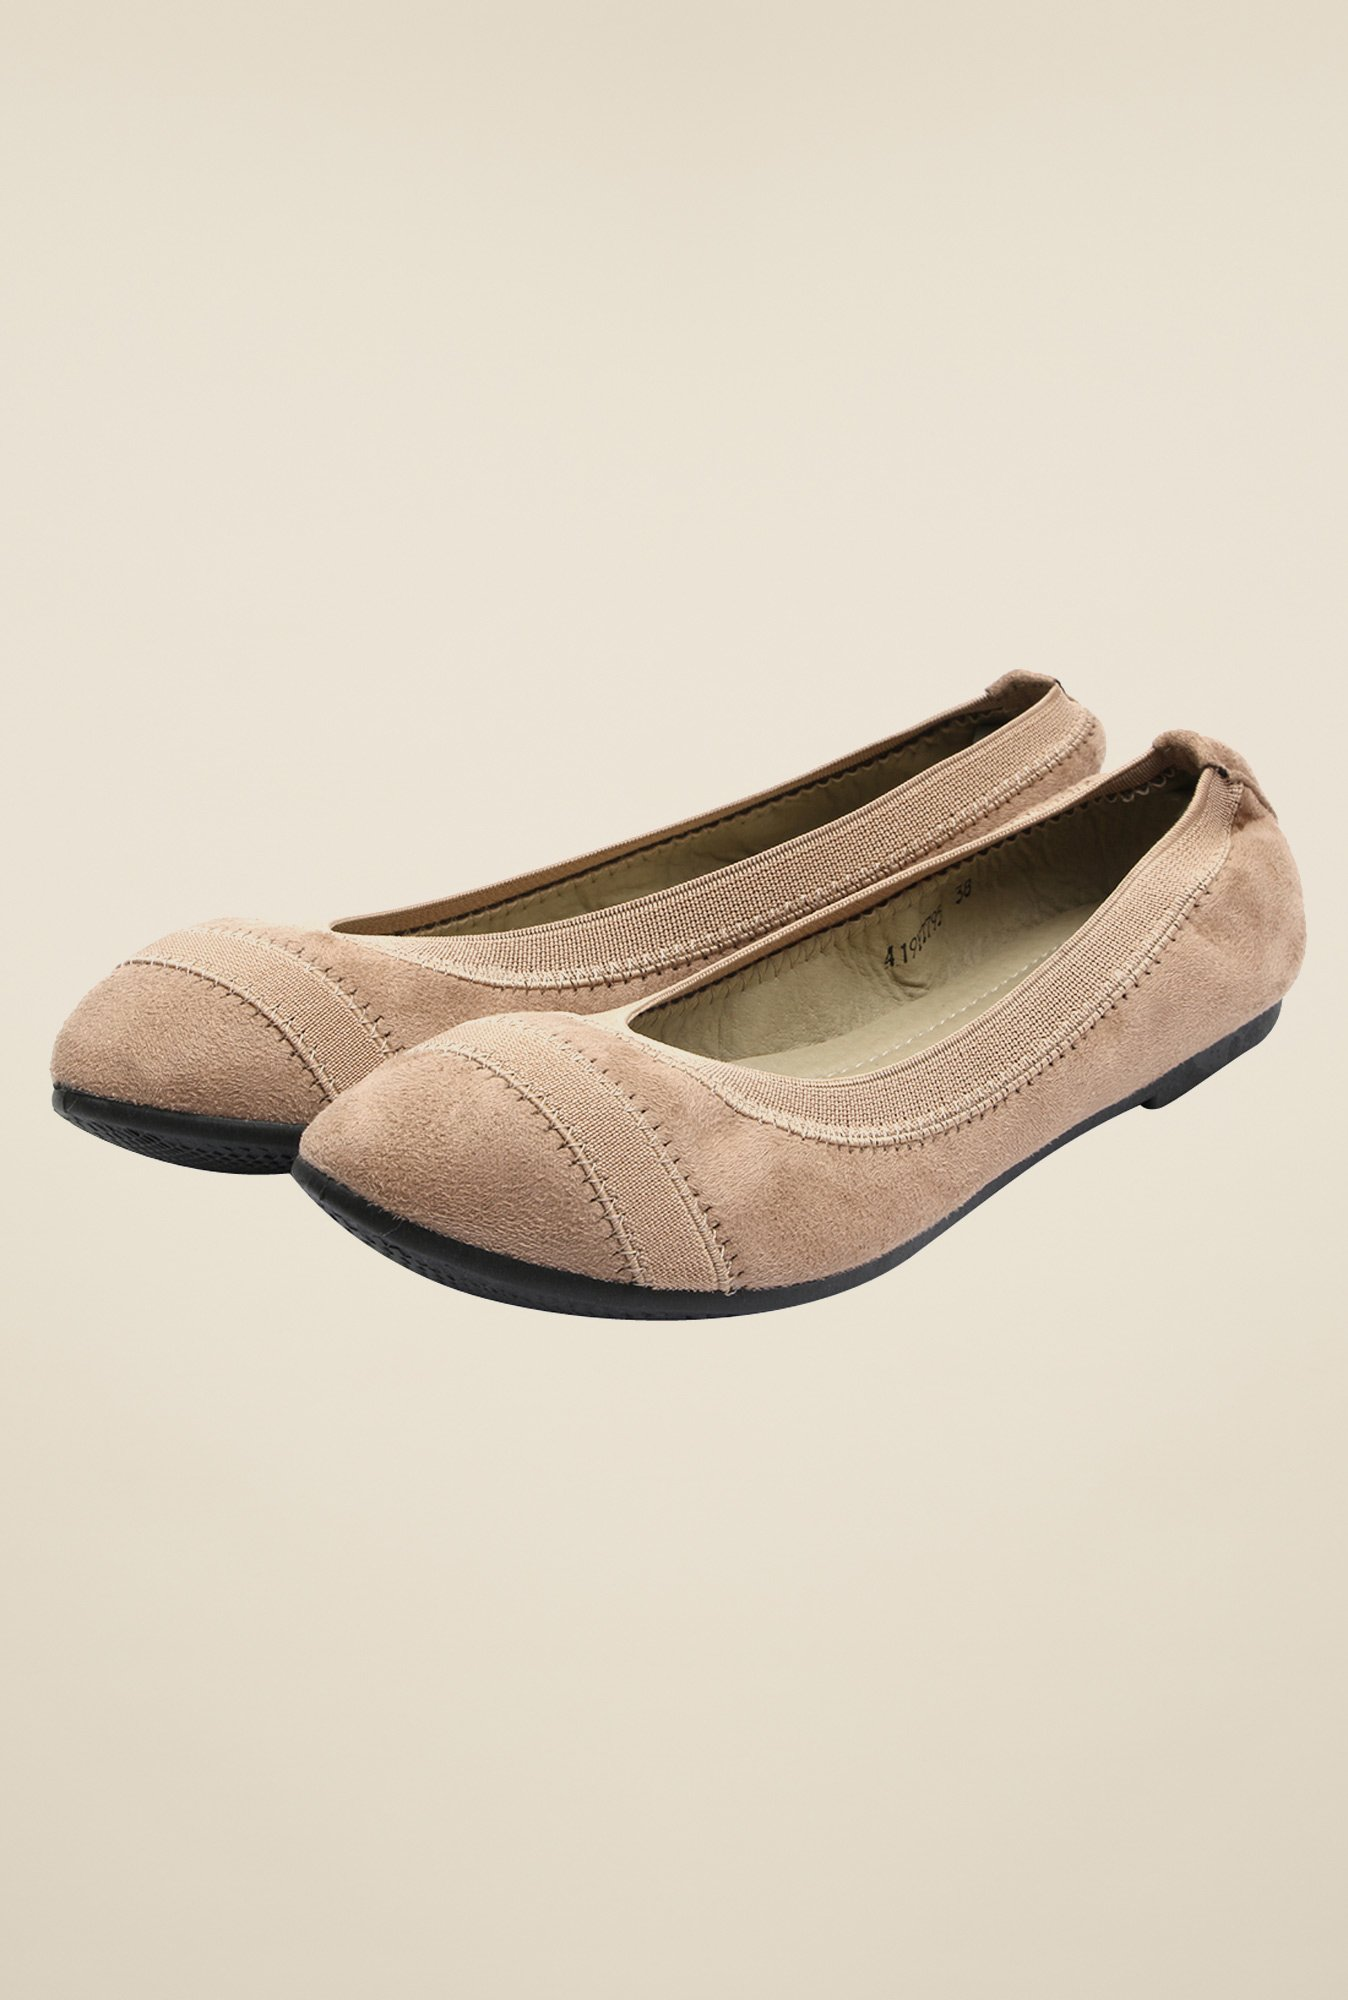 Solovoga Sobally Beige Ballerina Shoes